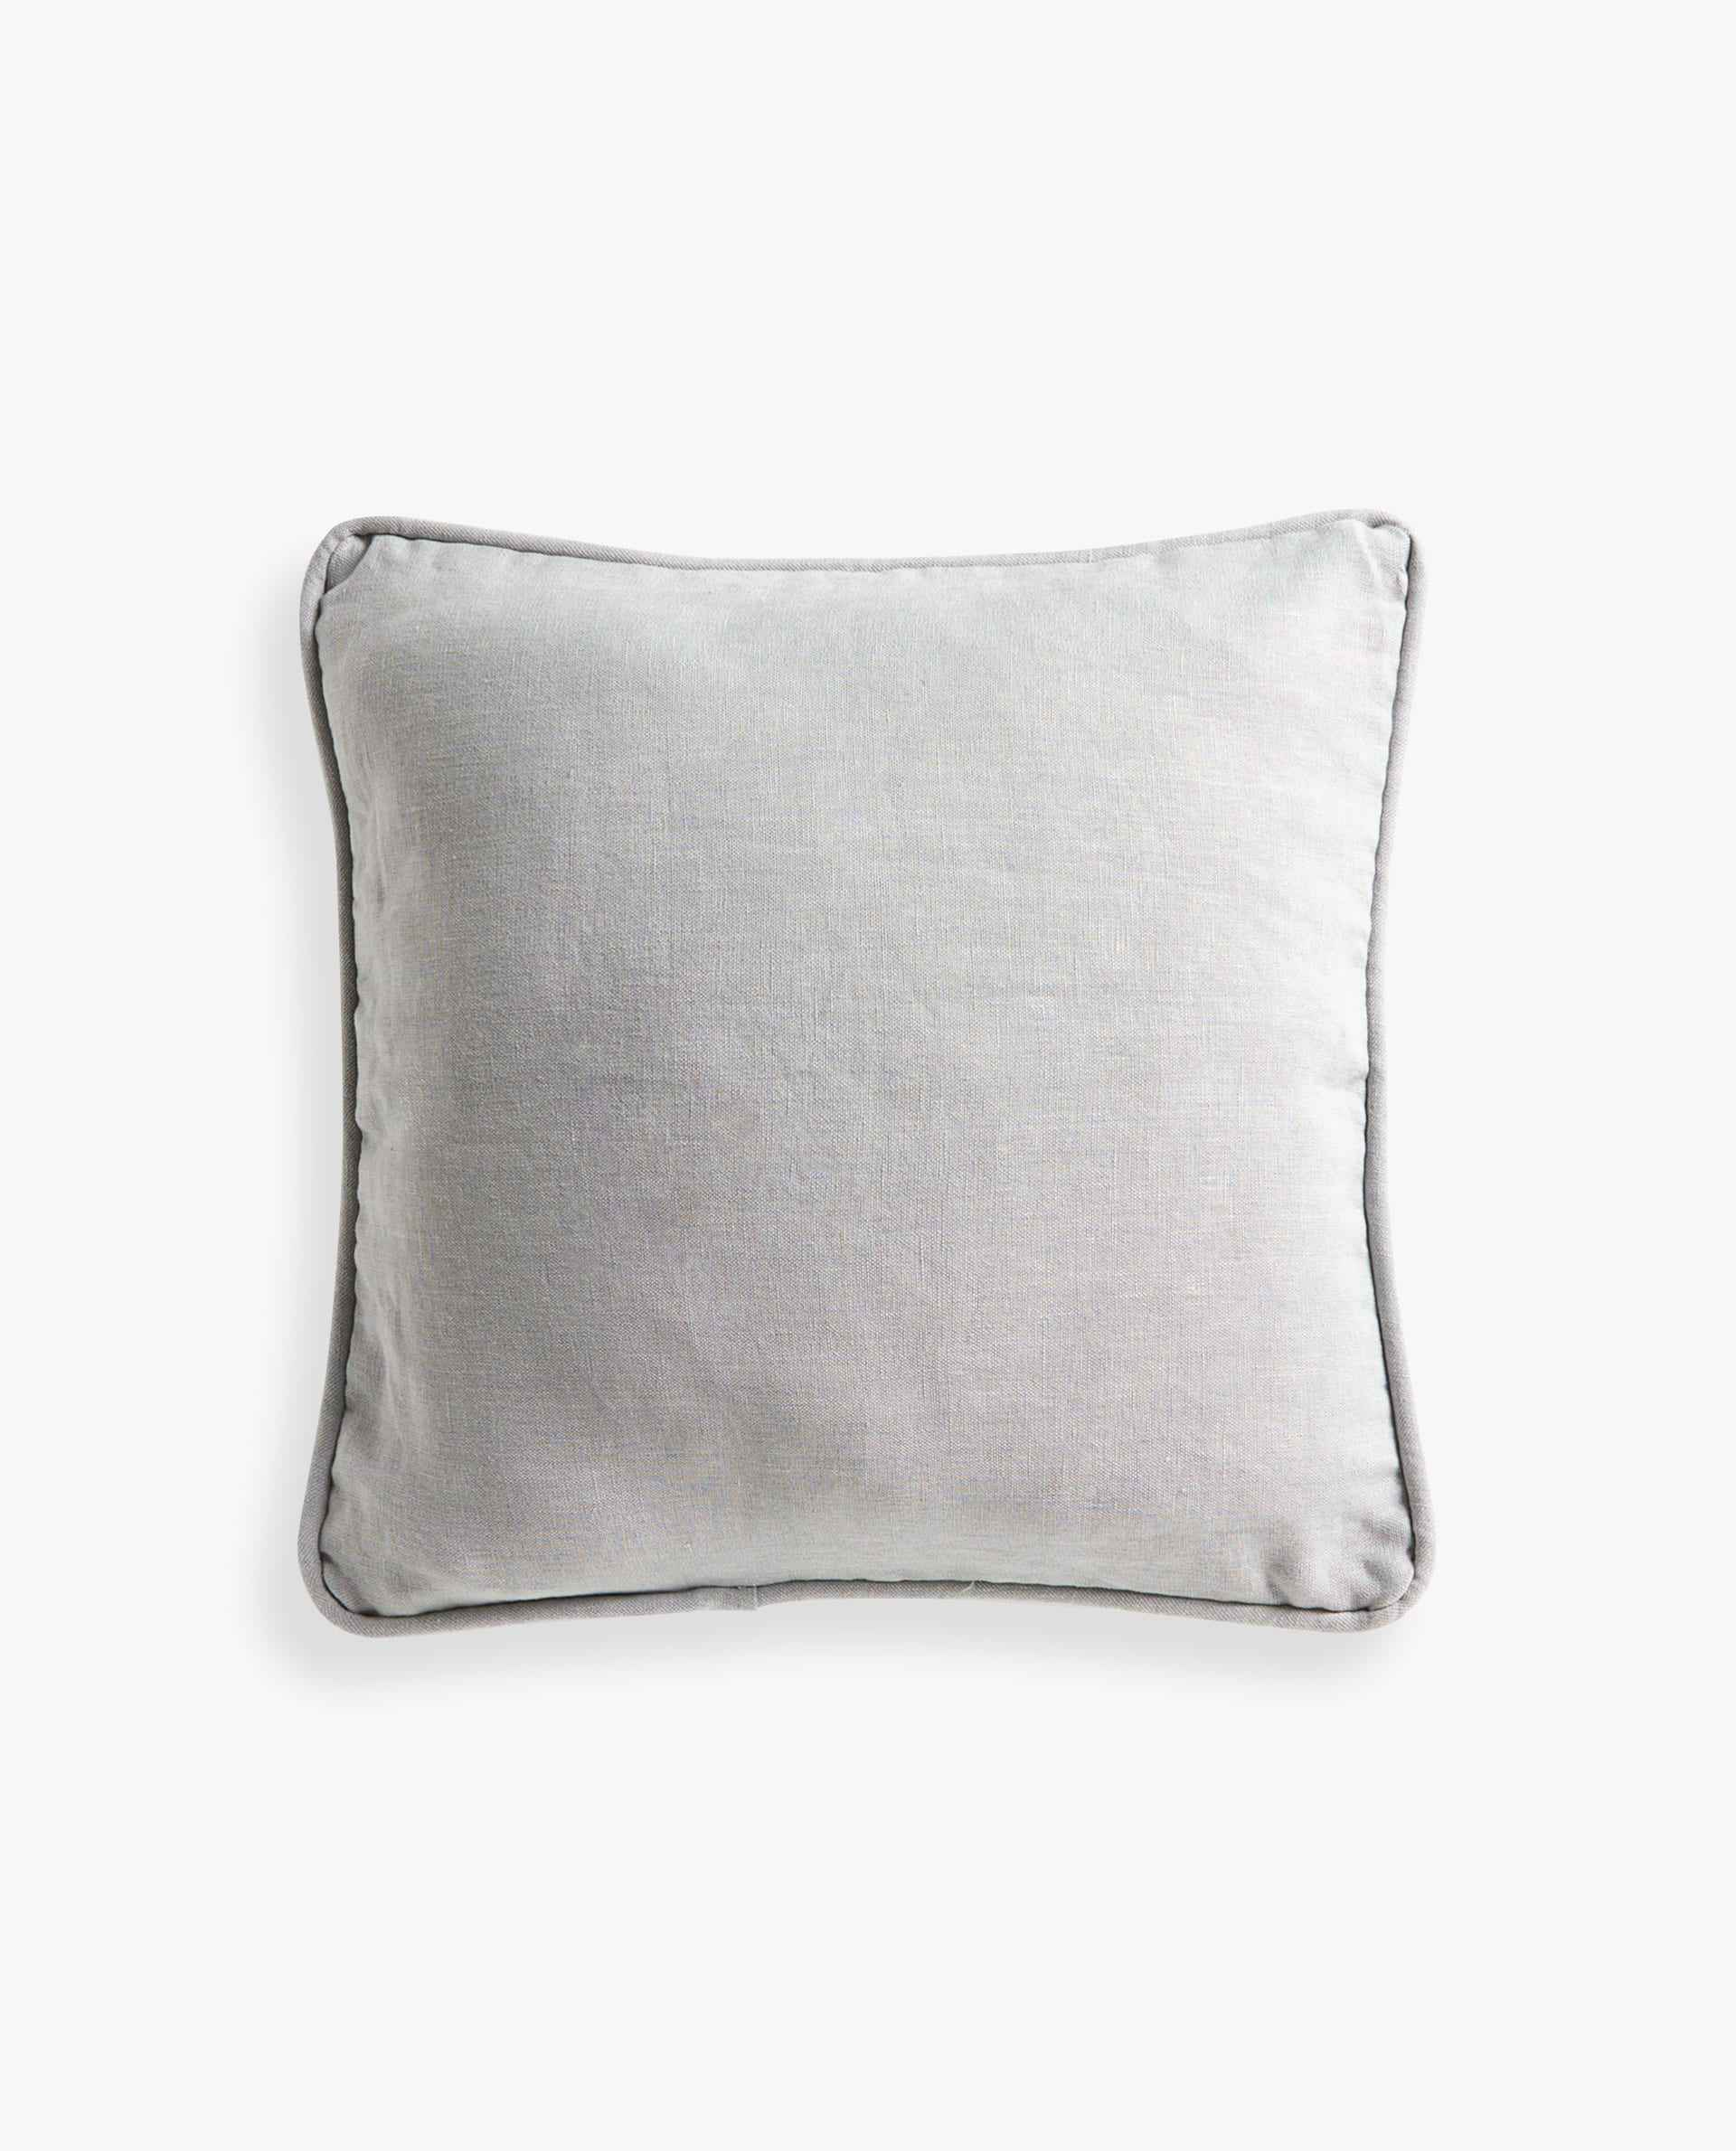 Linen Throw Pillow with Piping